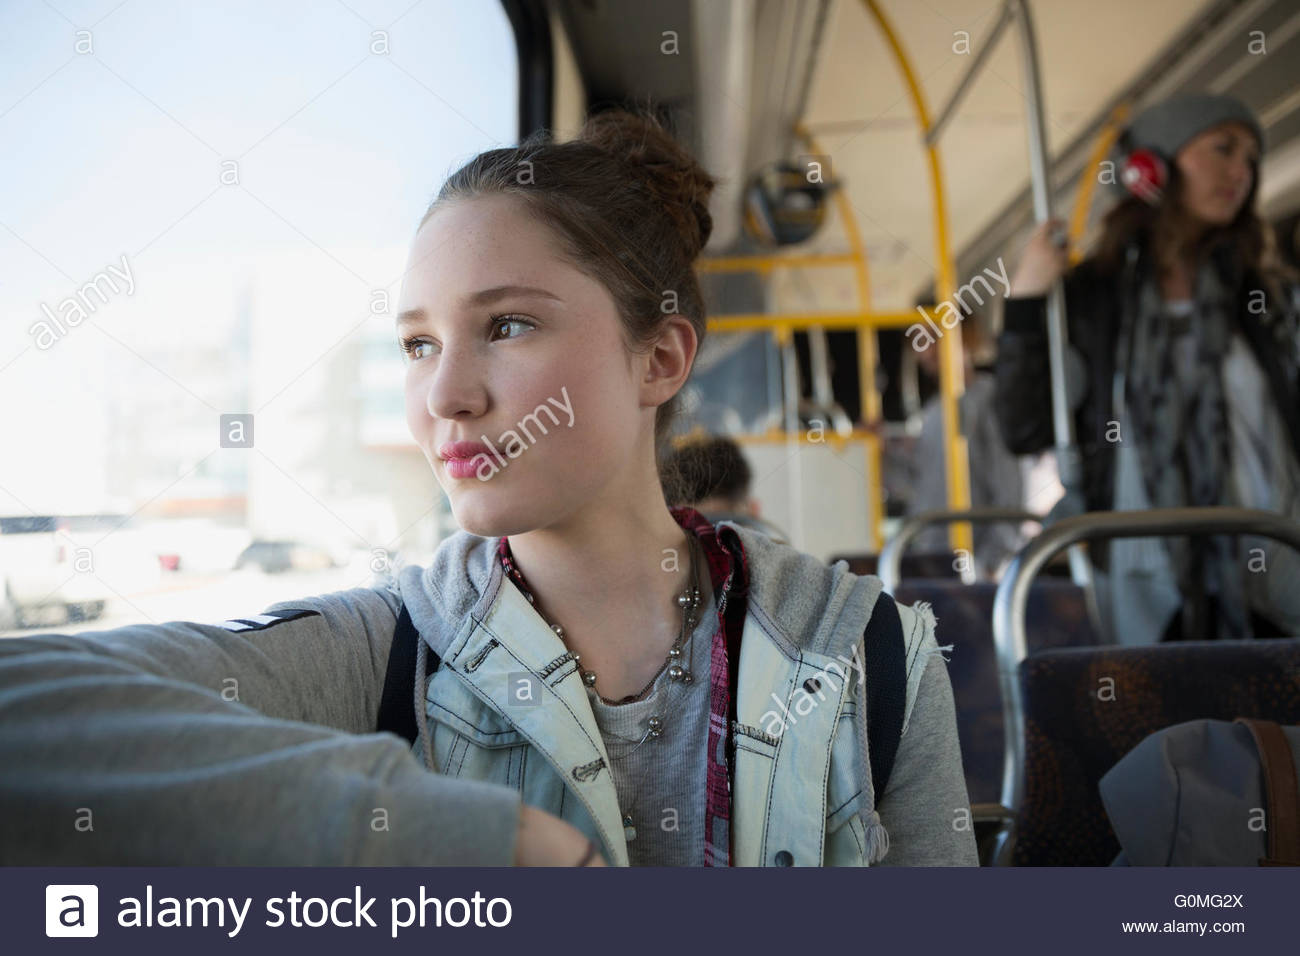 Pensive teenage girl riding bus looking out window Photo Stock